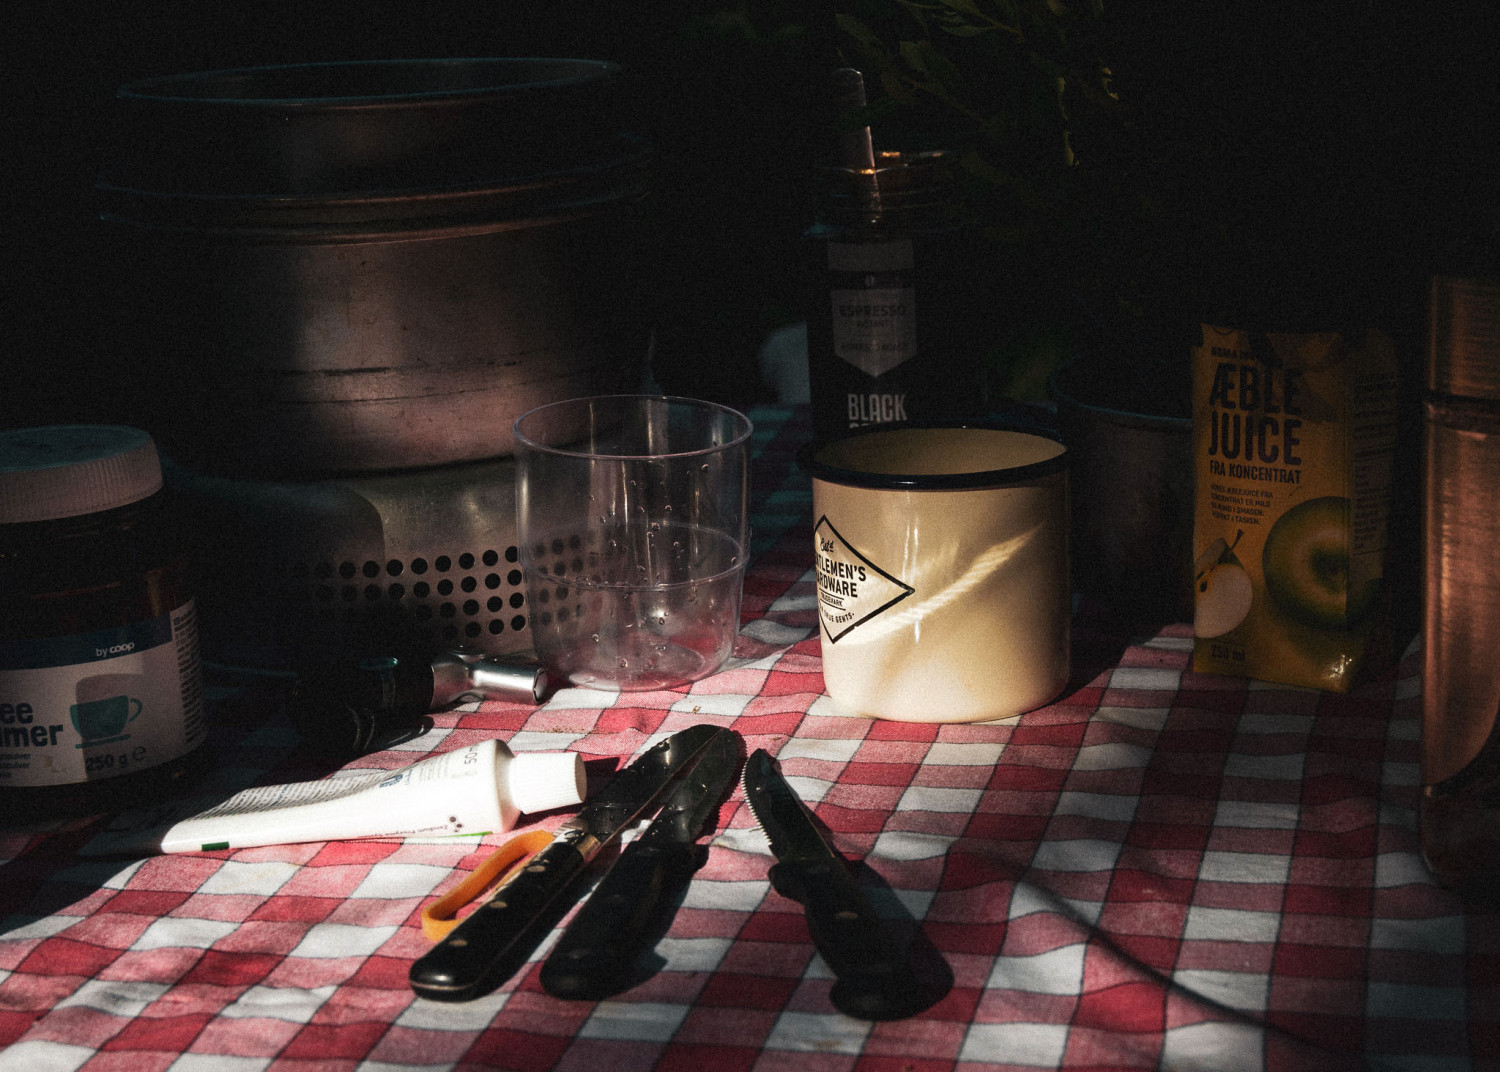 sunbeams, tincup, trangia, tablecloth, coffee, kaffe, outdoor coffee